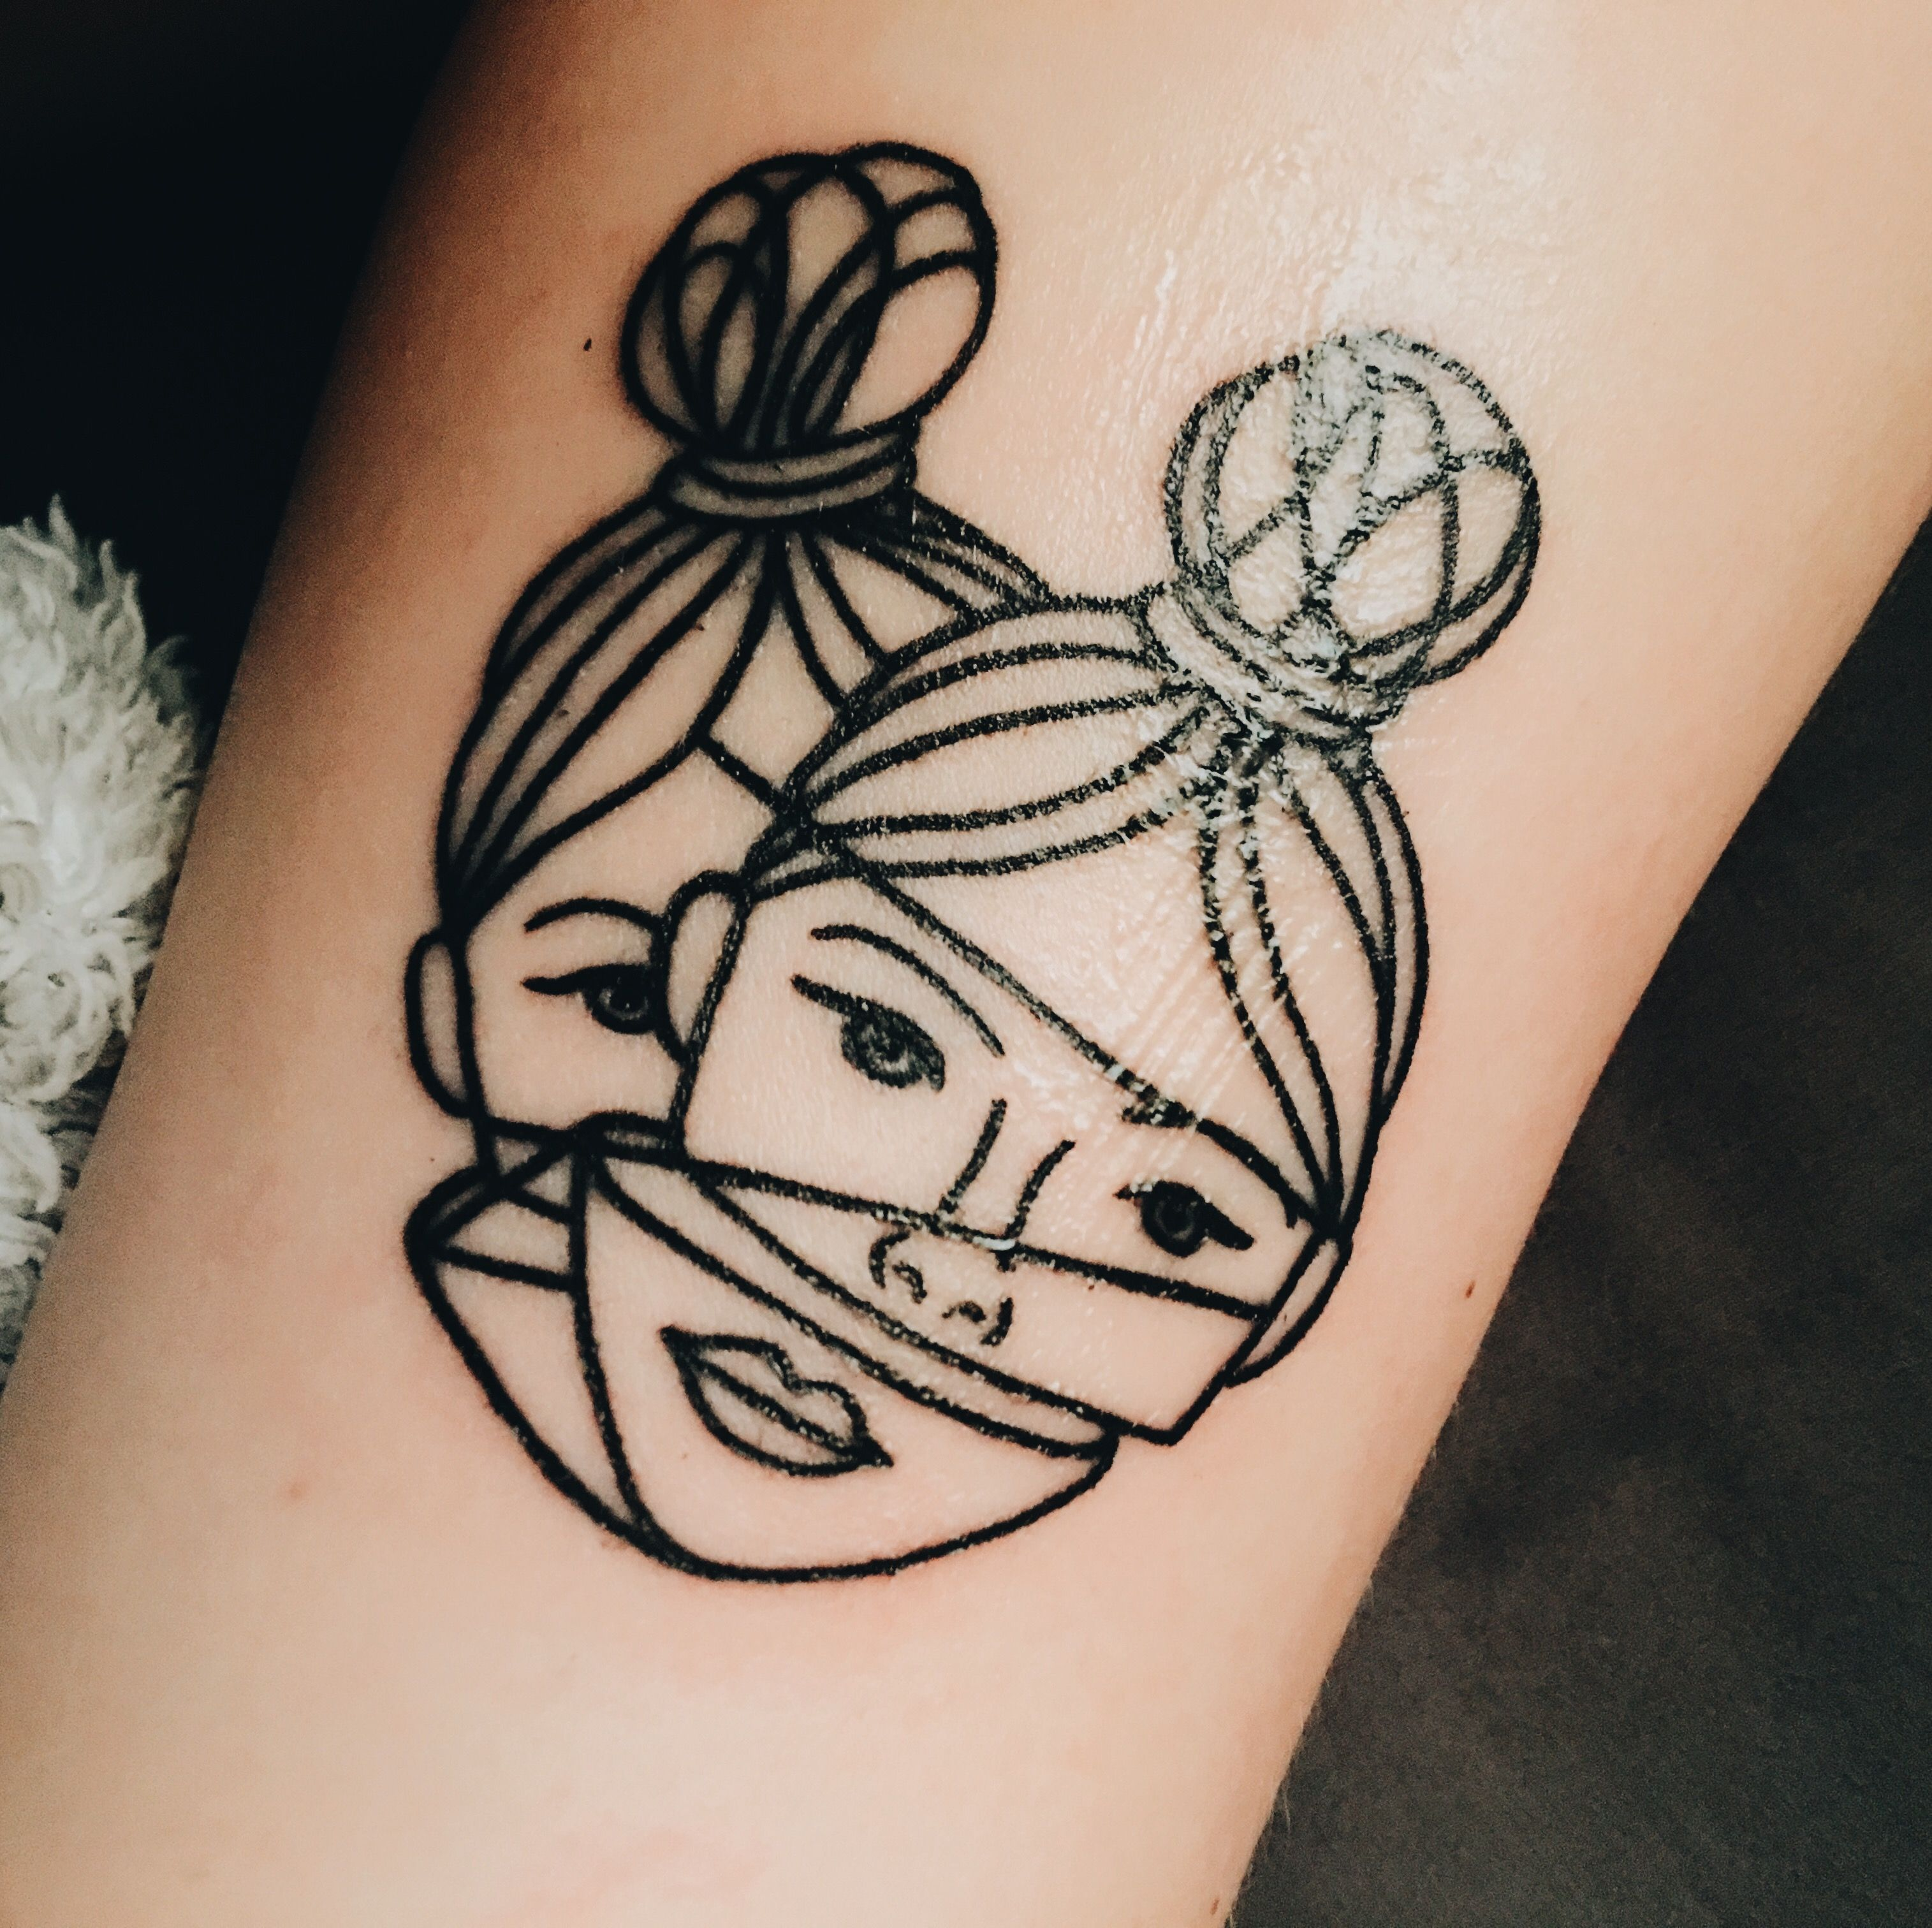 Simplistic Face tattoo, done by Haley Adams at Northeast